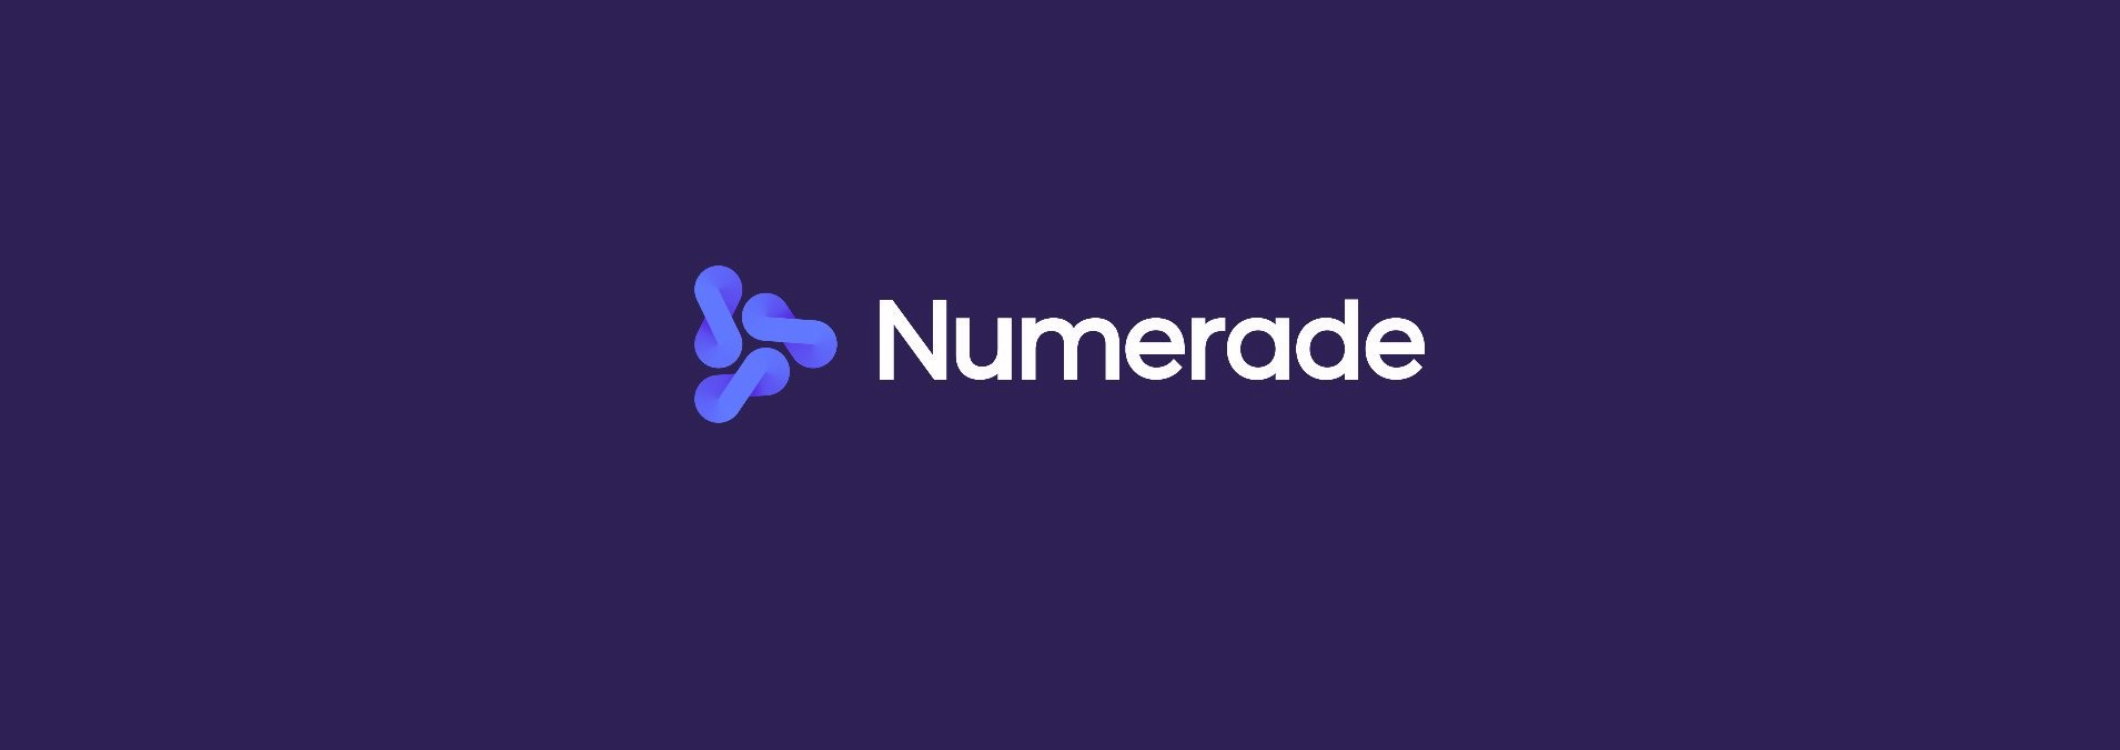 About Numerade Homepage